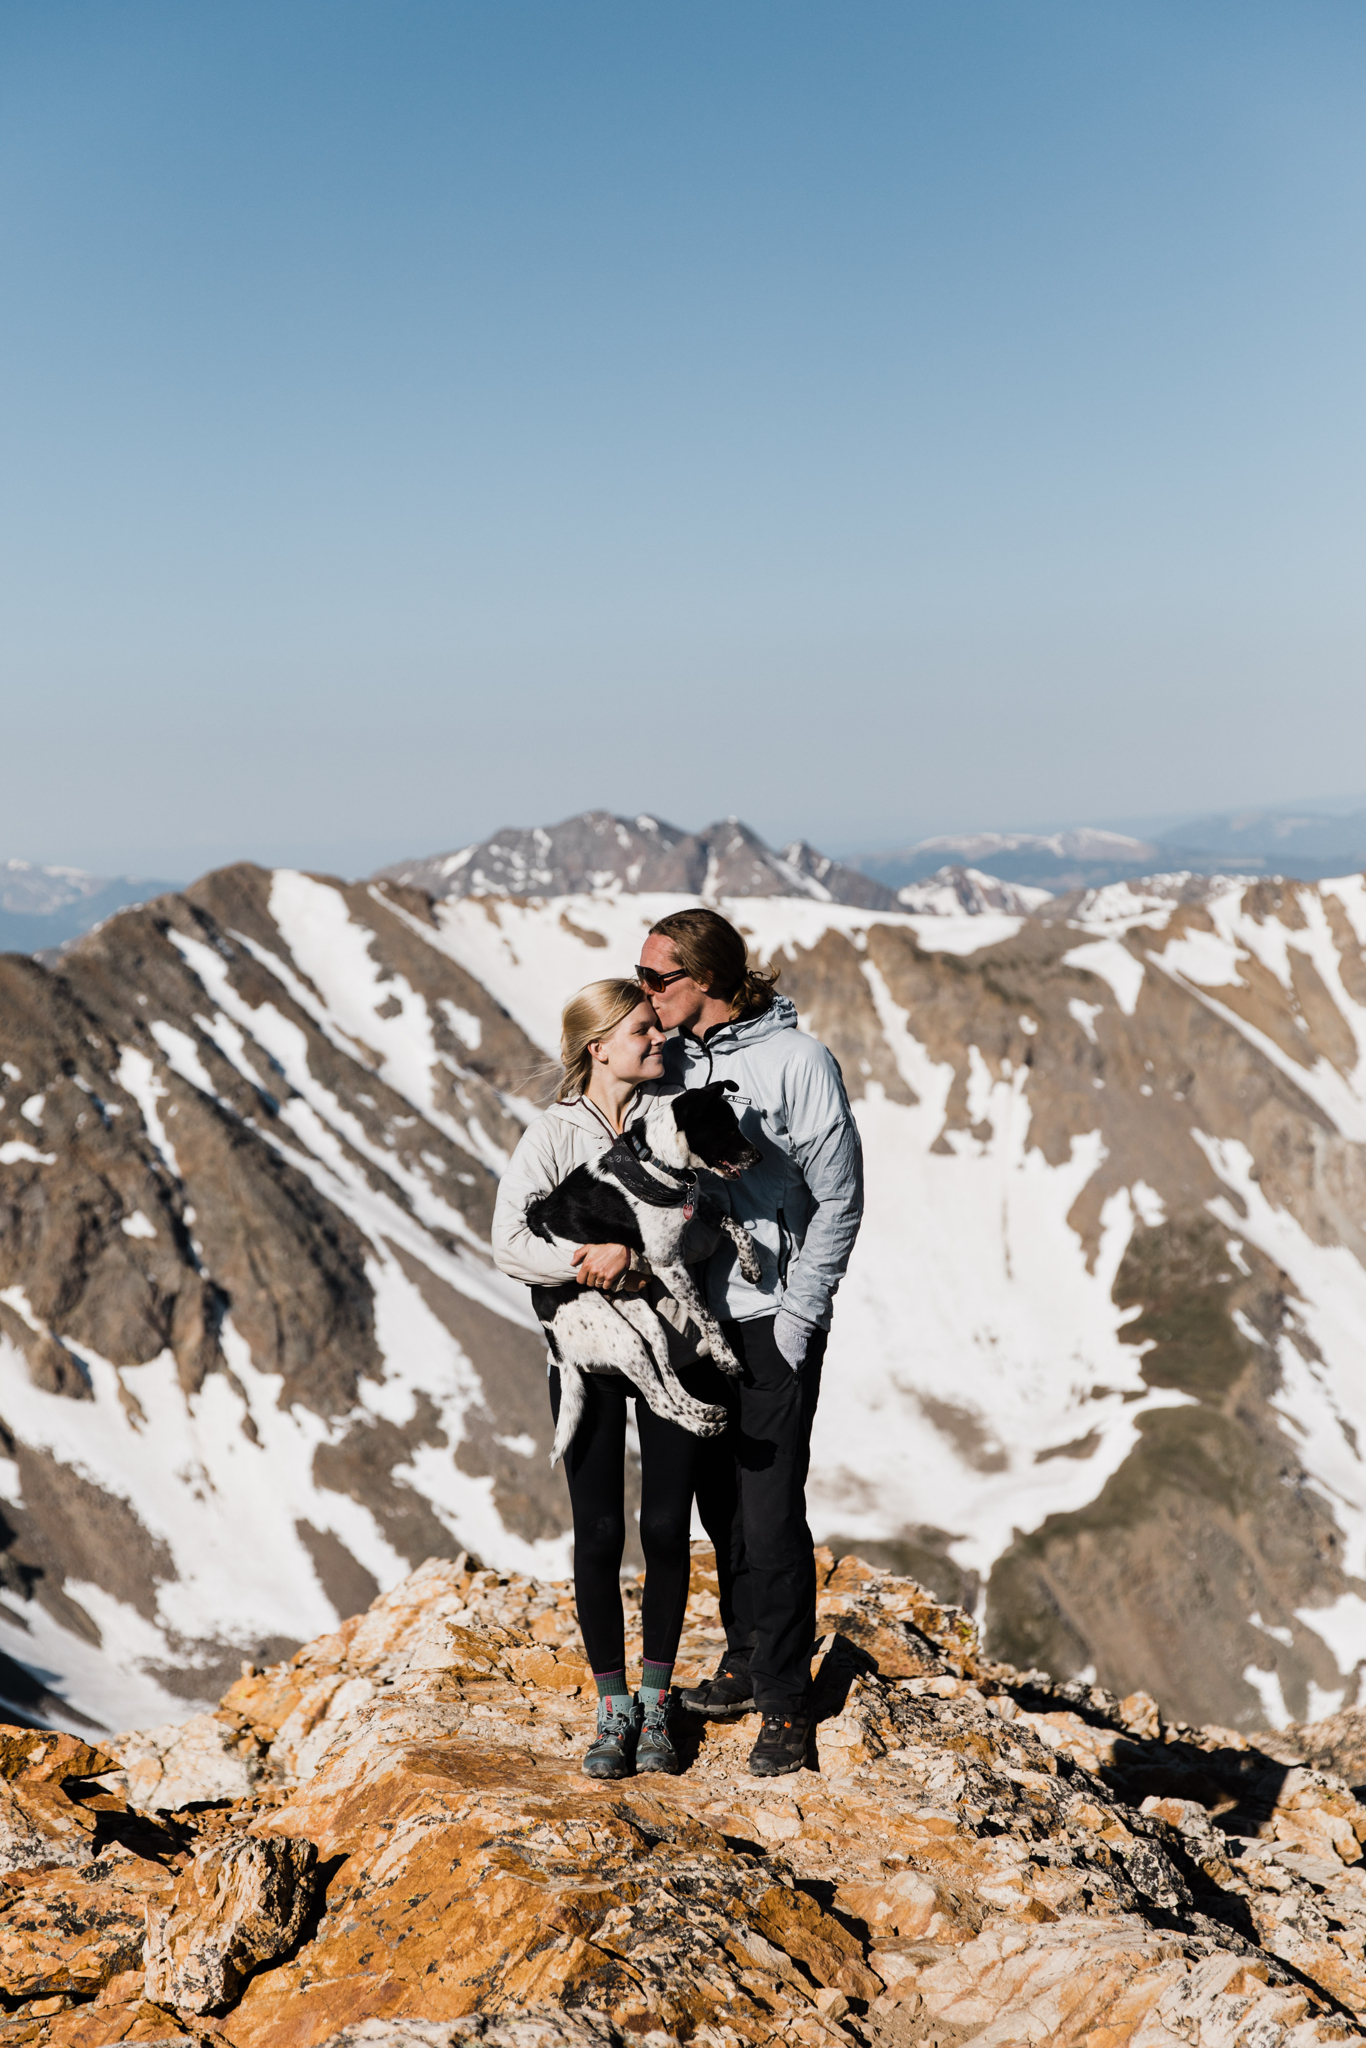 climbing mountains in colorado | utah and california adventure elopement photographers | the hearnes adventure photography | www.thehearnes.com